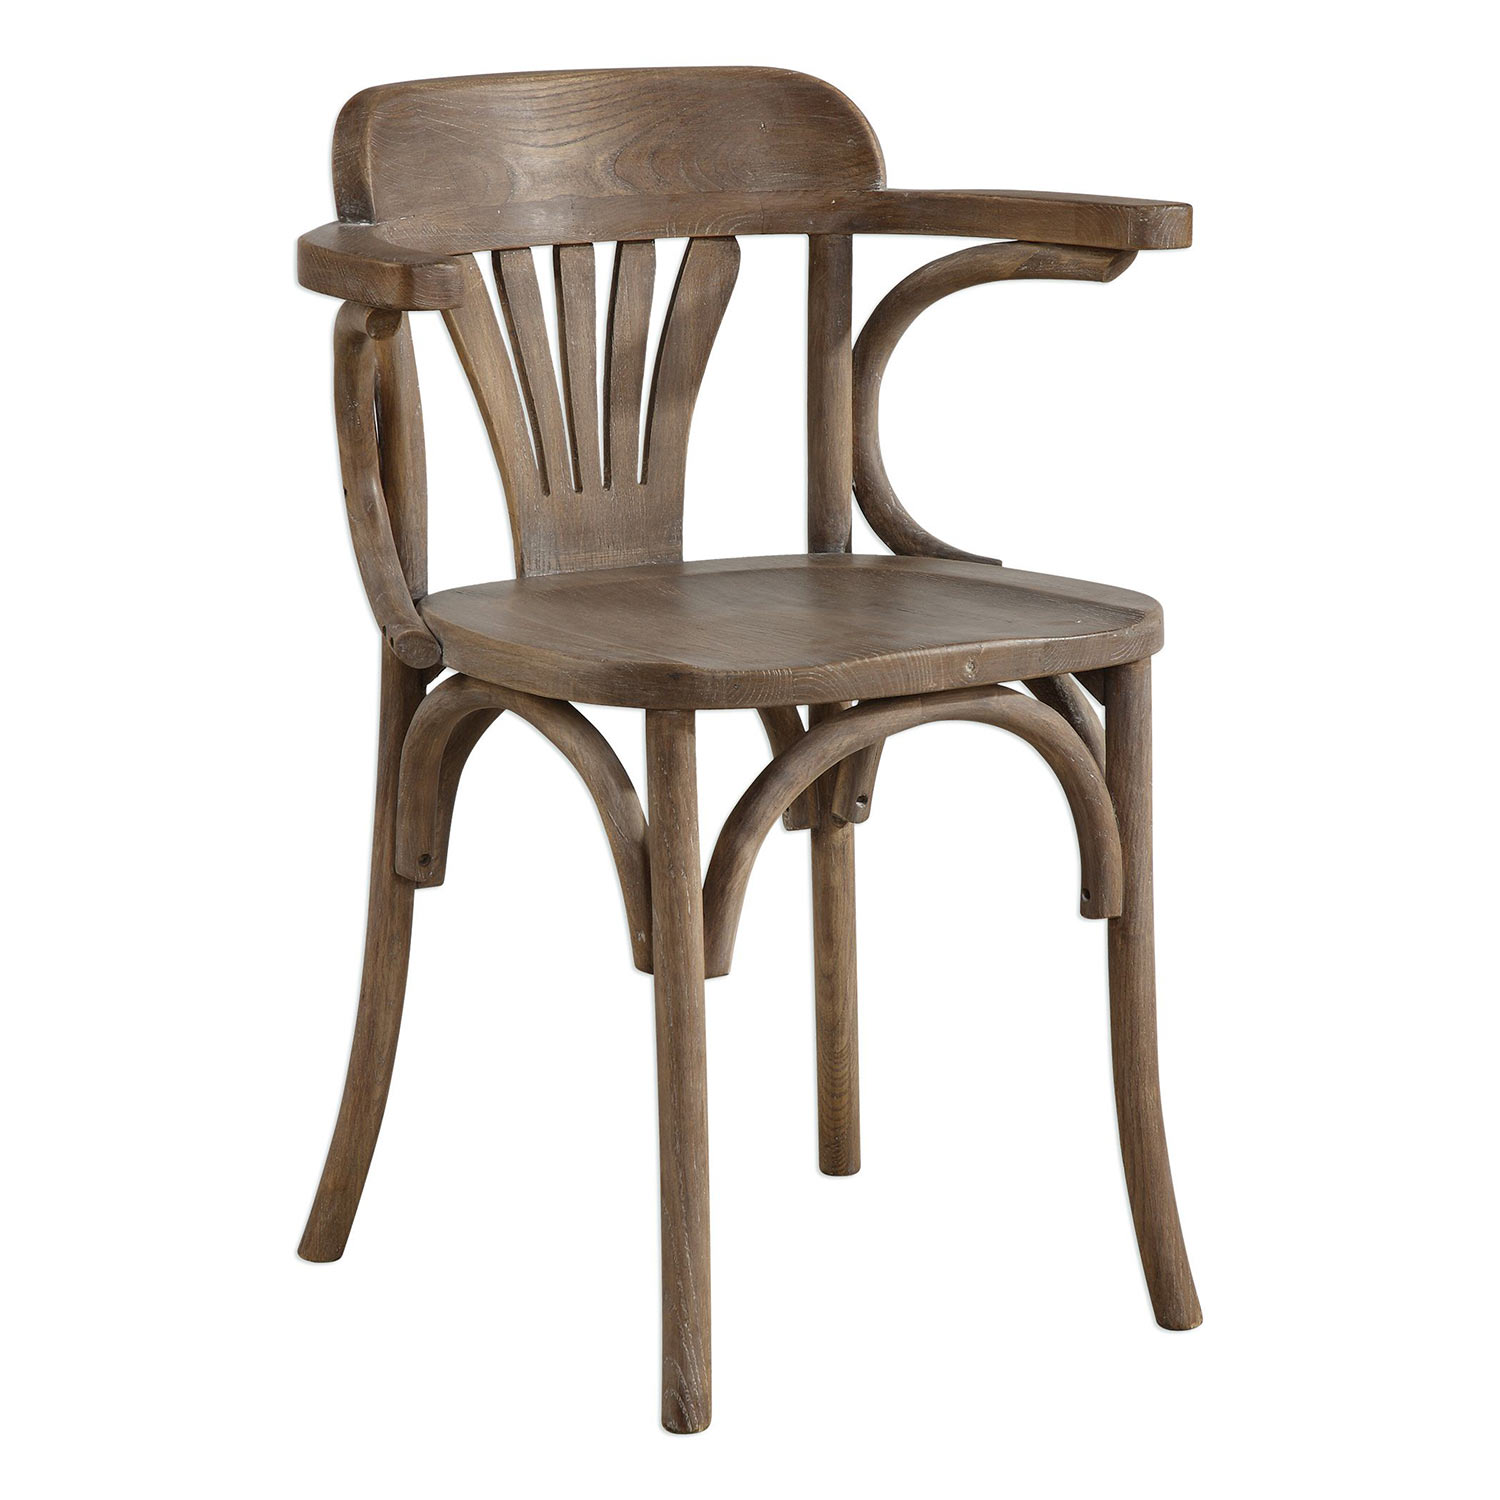 Uttermost Huck Accent Chair - Natural